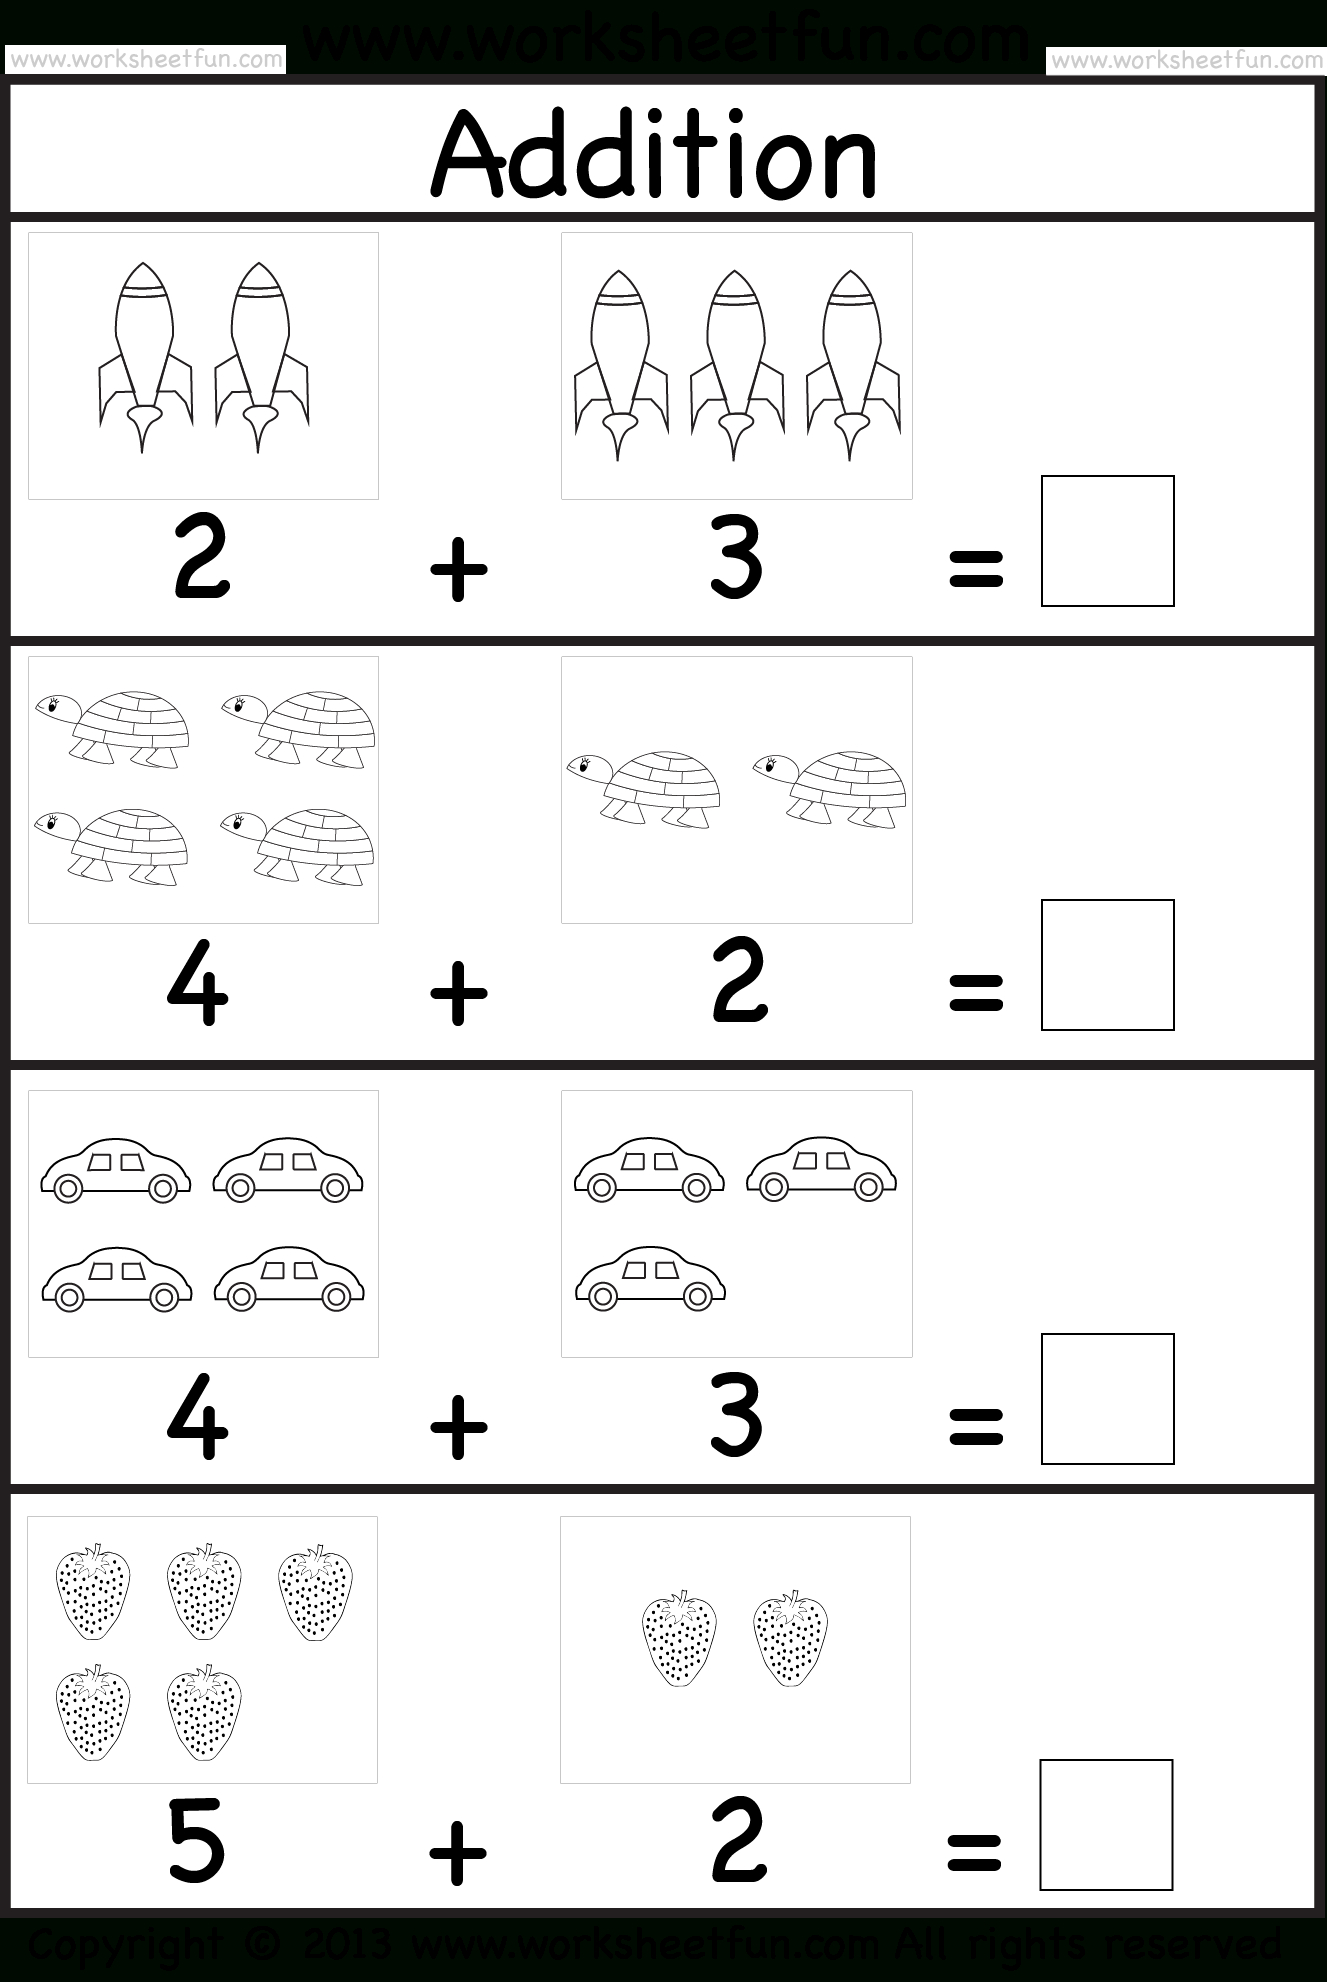 Addition Worksheet. This Site Has Great Free Worksheets For - Www Free Printable Worksheets